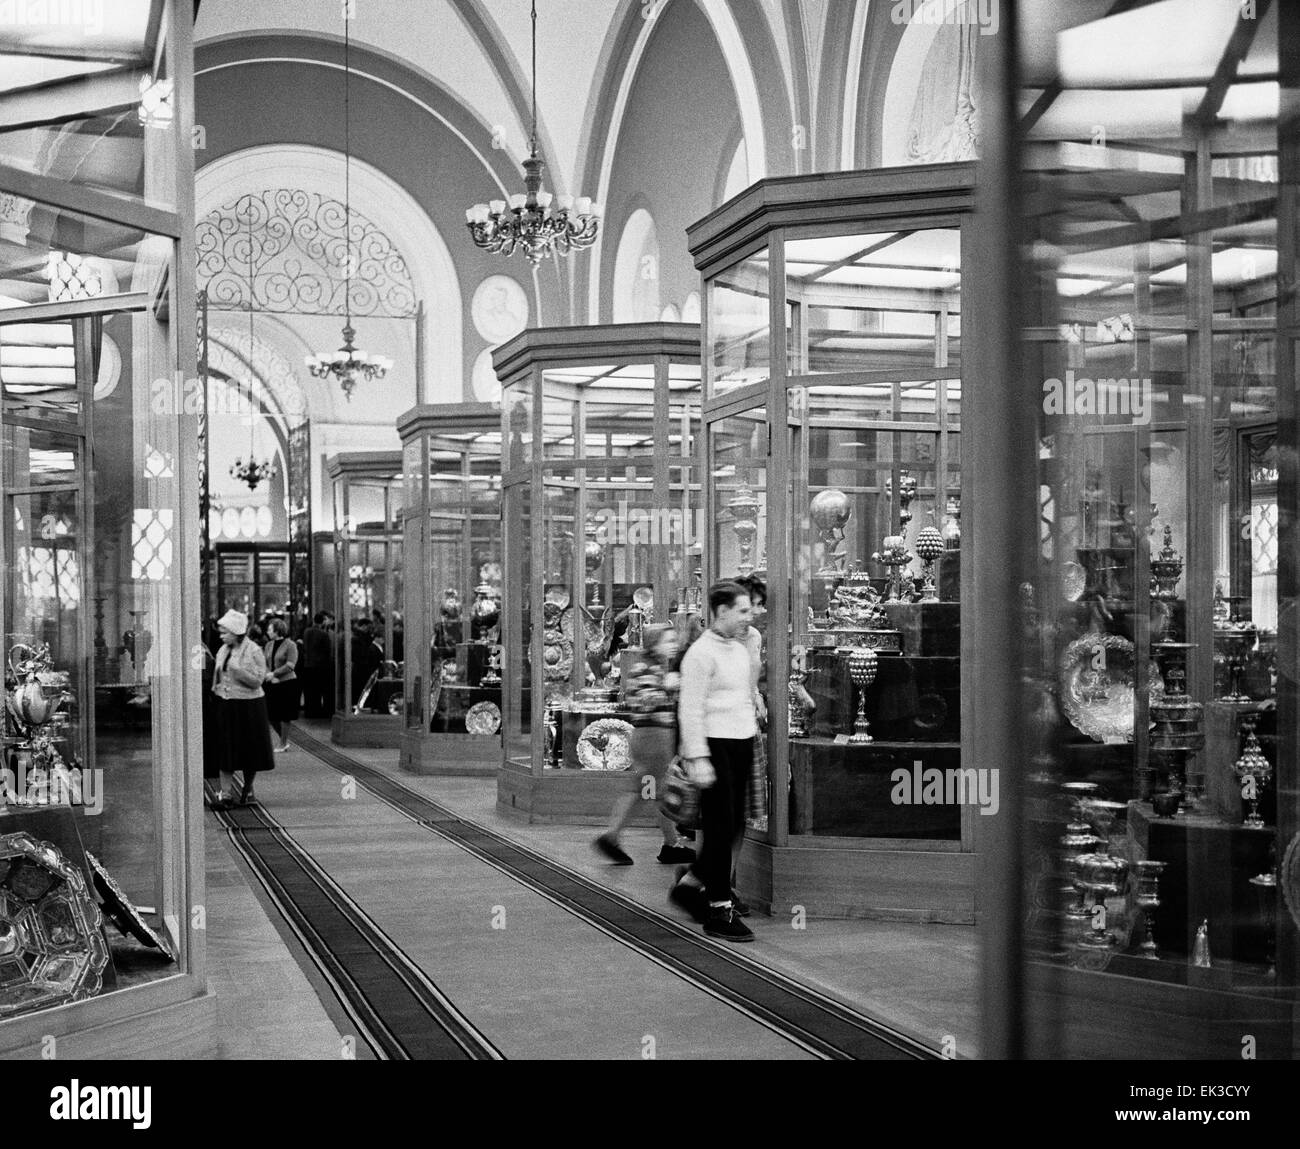 Moscow. USSR. Inside of one of the halls of the Kremlin Armoury. - Stock Image